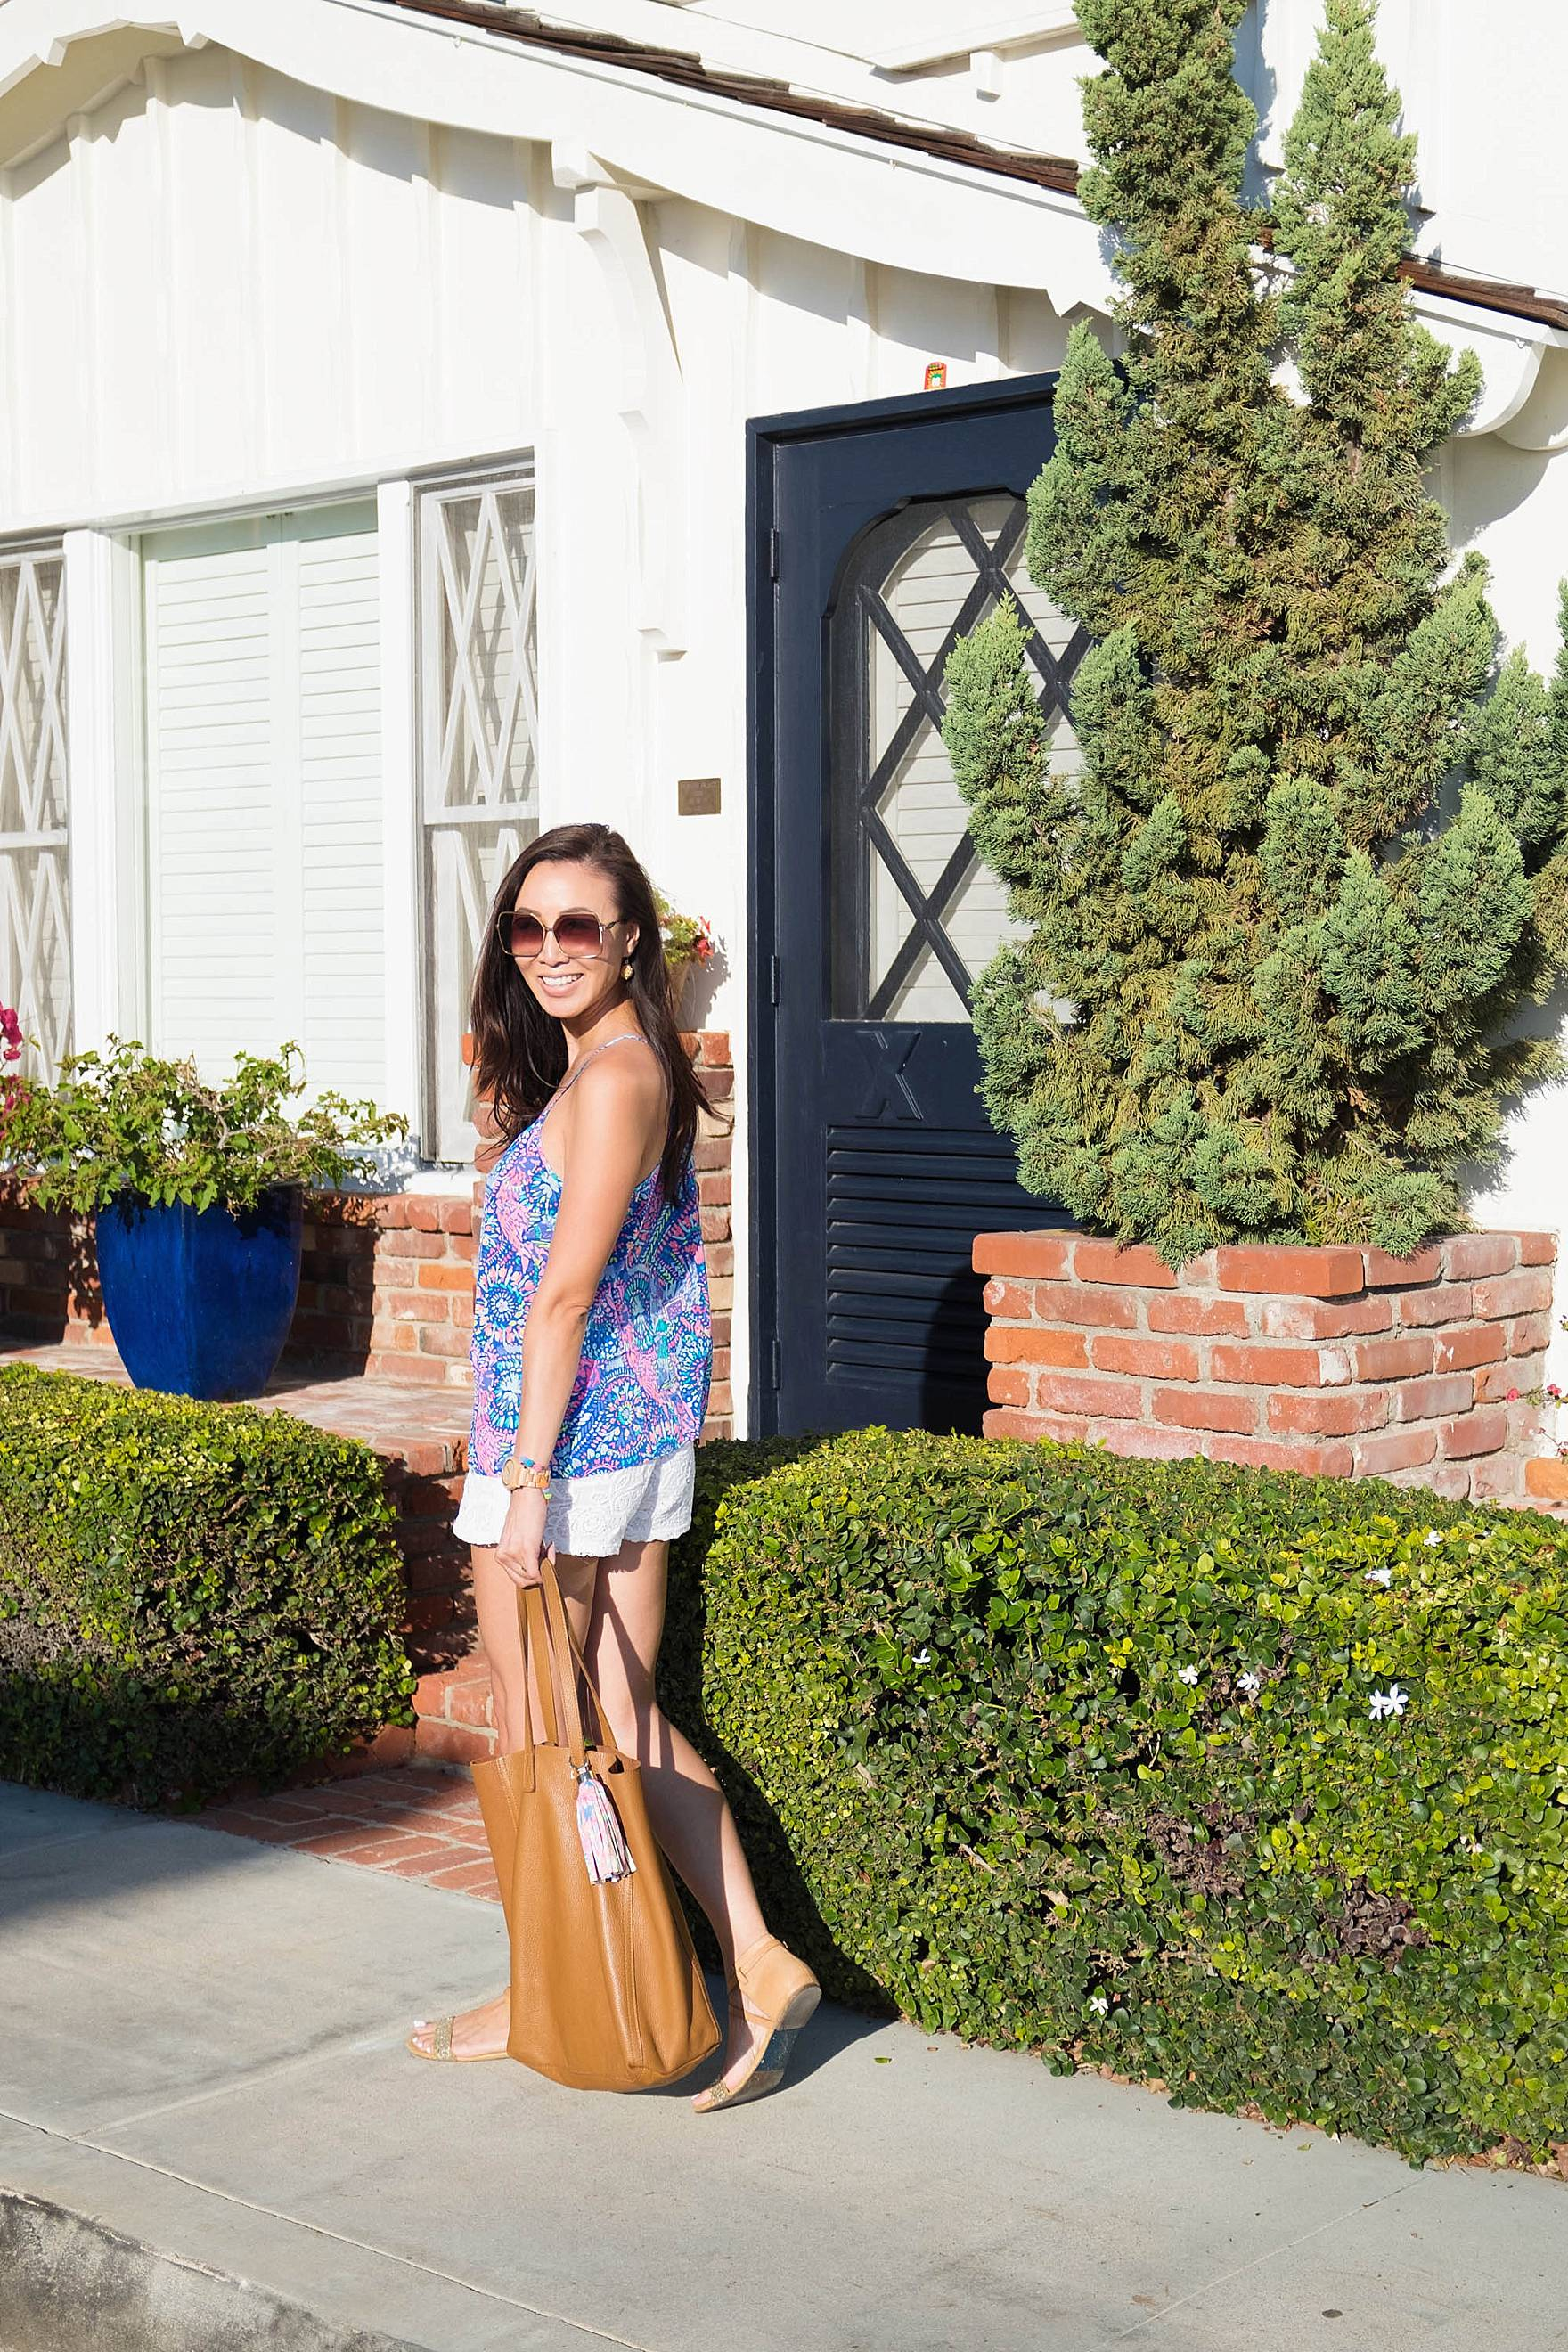 Lilly Pulitzer DUSK RACER BACK SILK TANK TOP, walking around Balboa Island